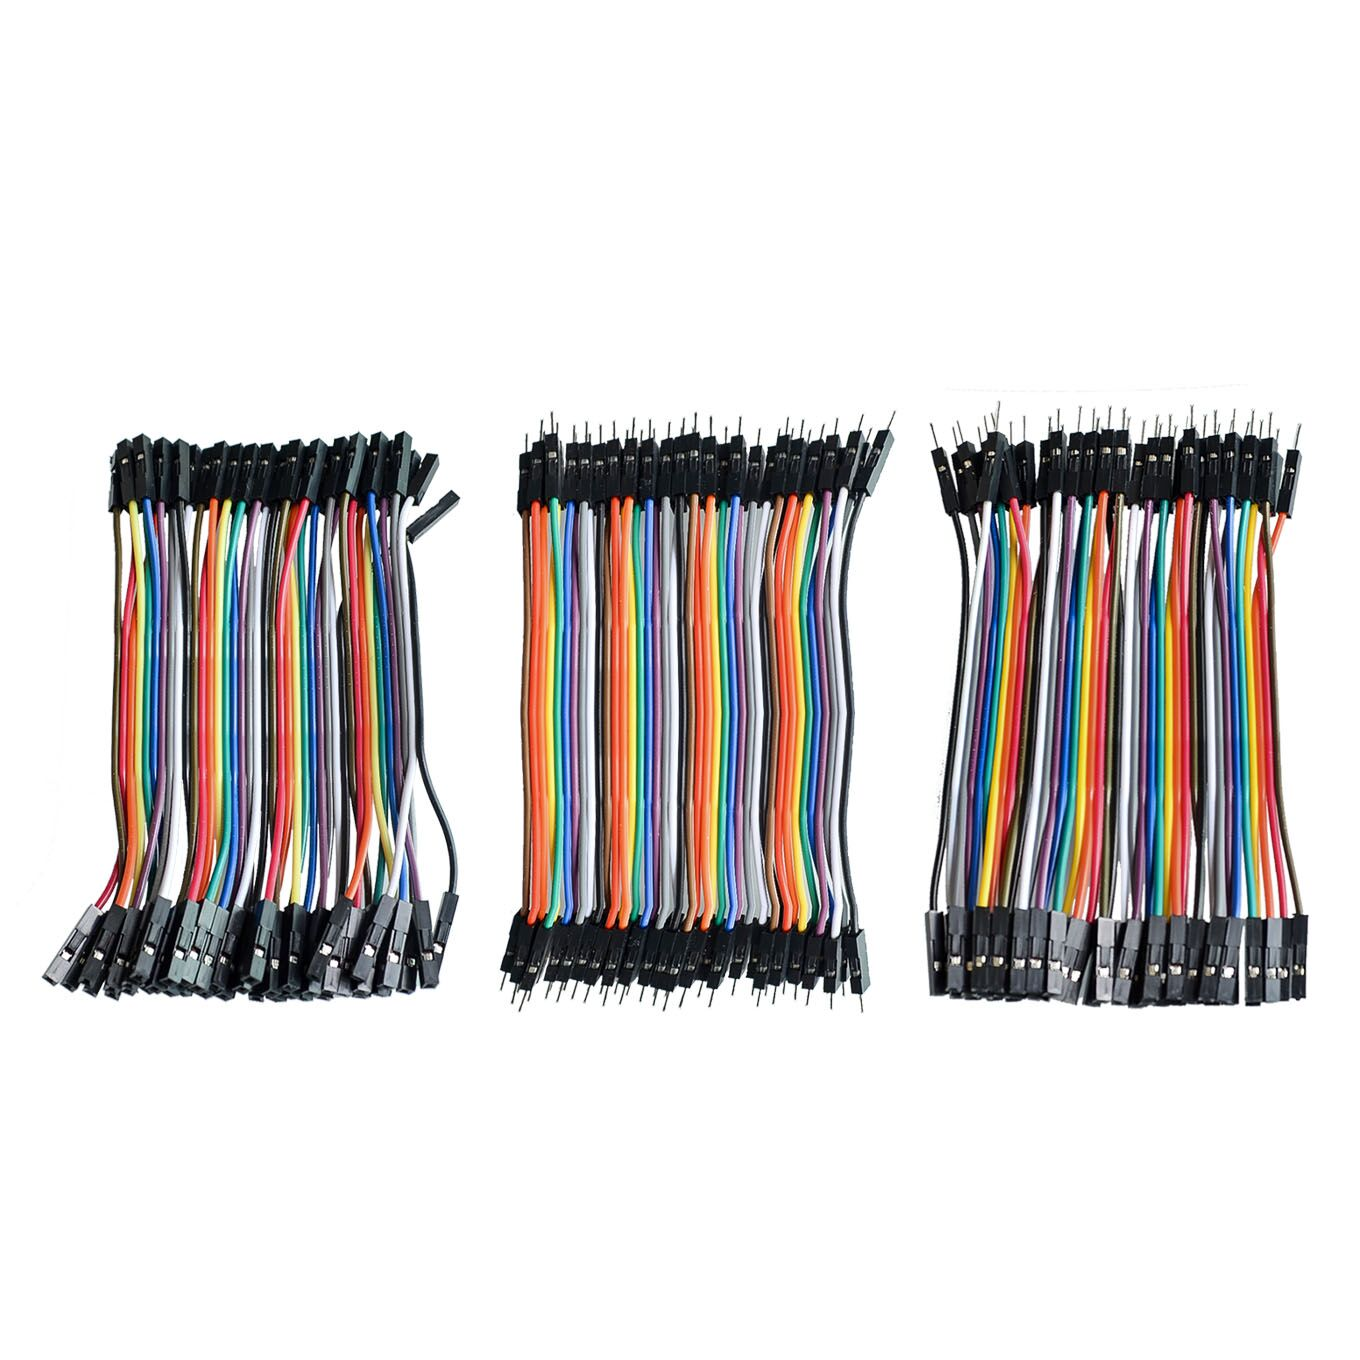 Dupont Line 120pcs 10cm Male To Male + Female To Male And Female To Female Jumper Wire Dupont Cable For Arduino DIY KIT(China)